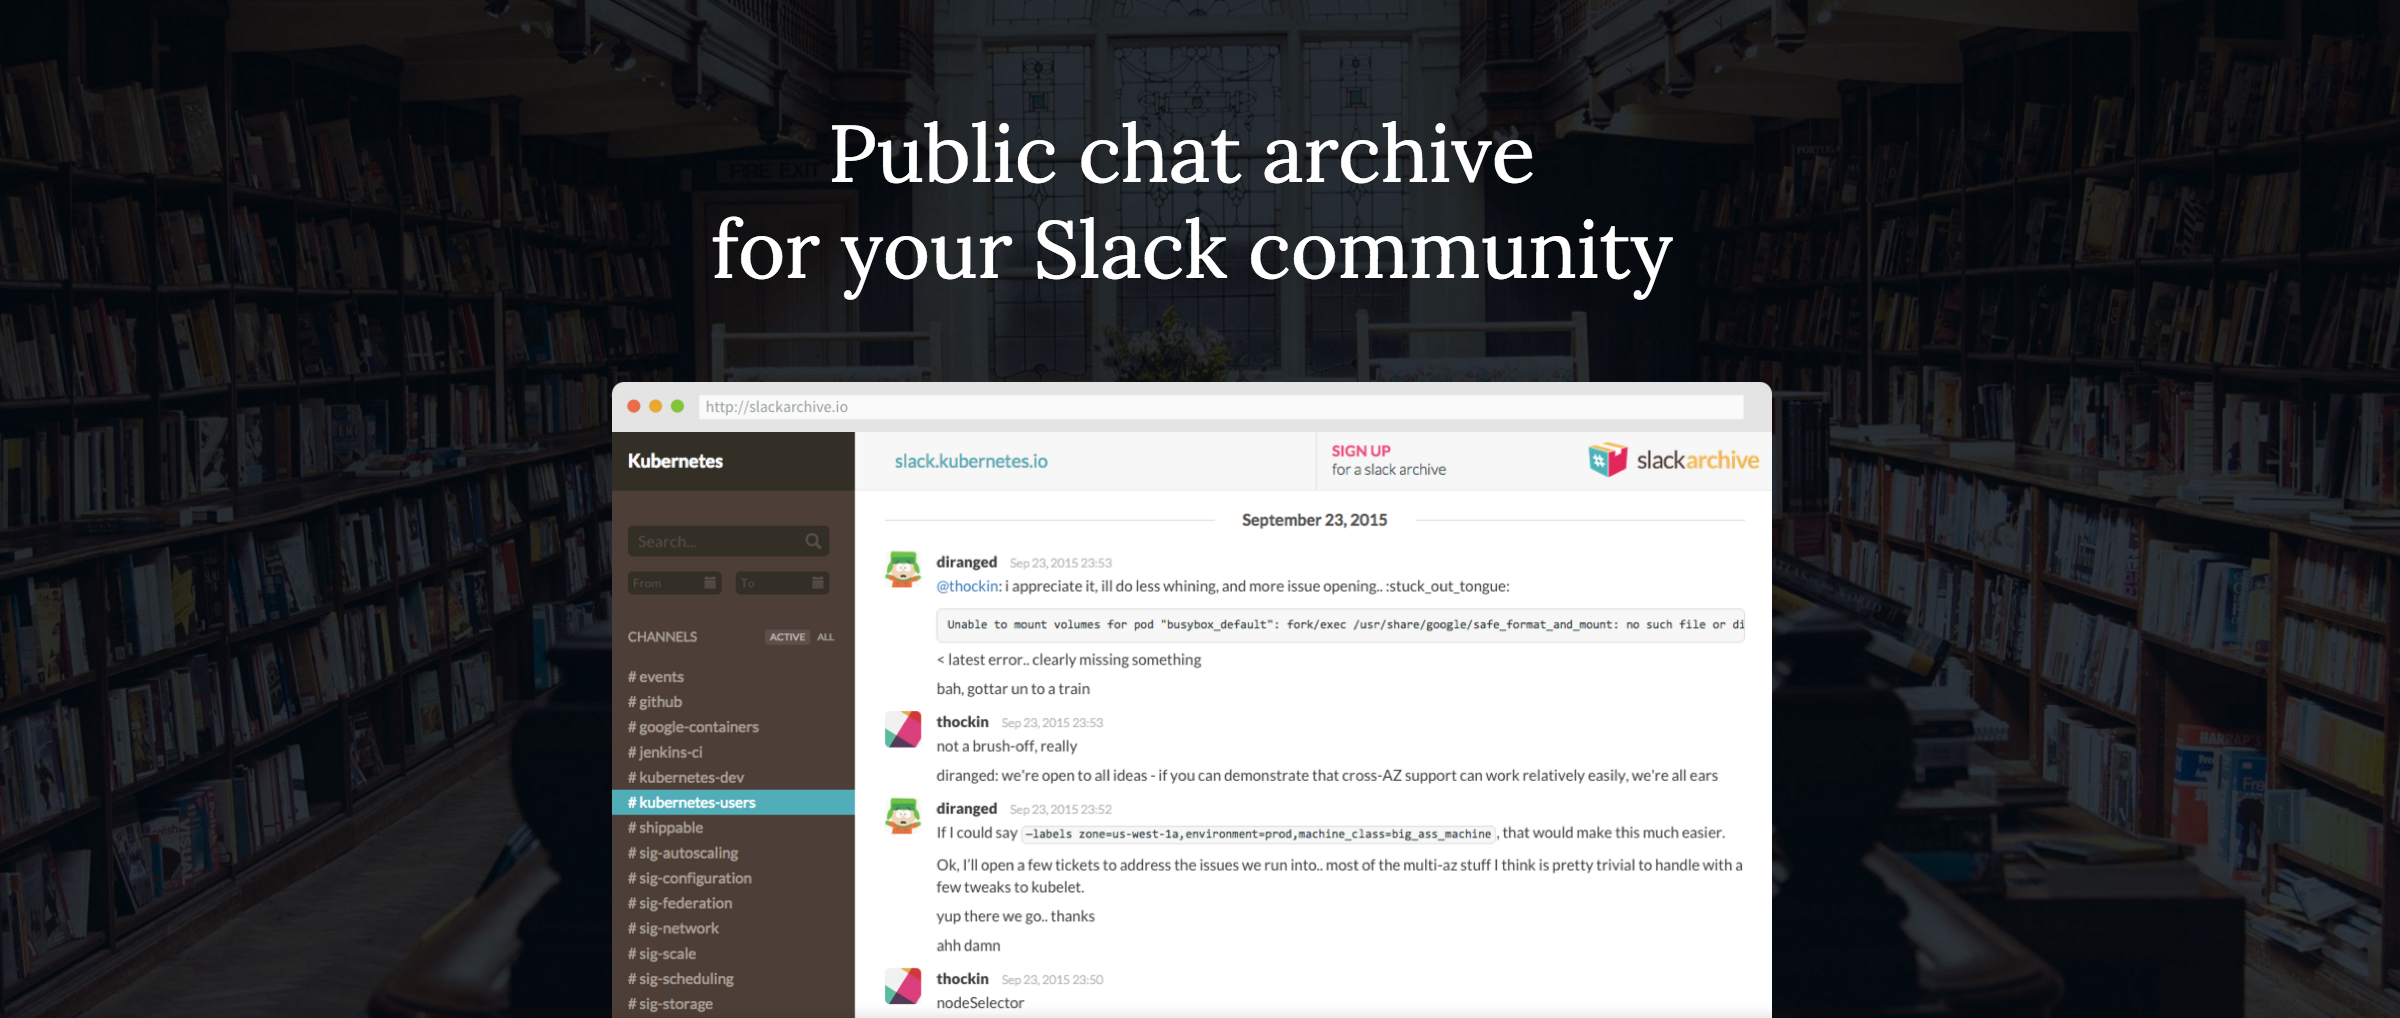 SlackArchive Gives You Public Chat Archive For Free | TechCrunch